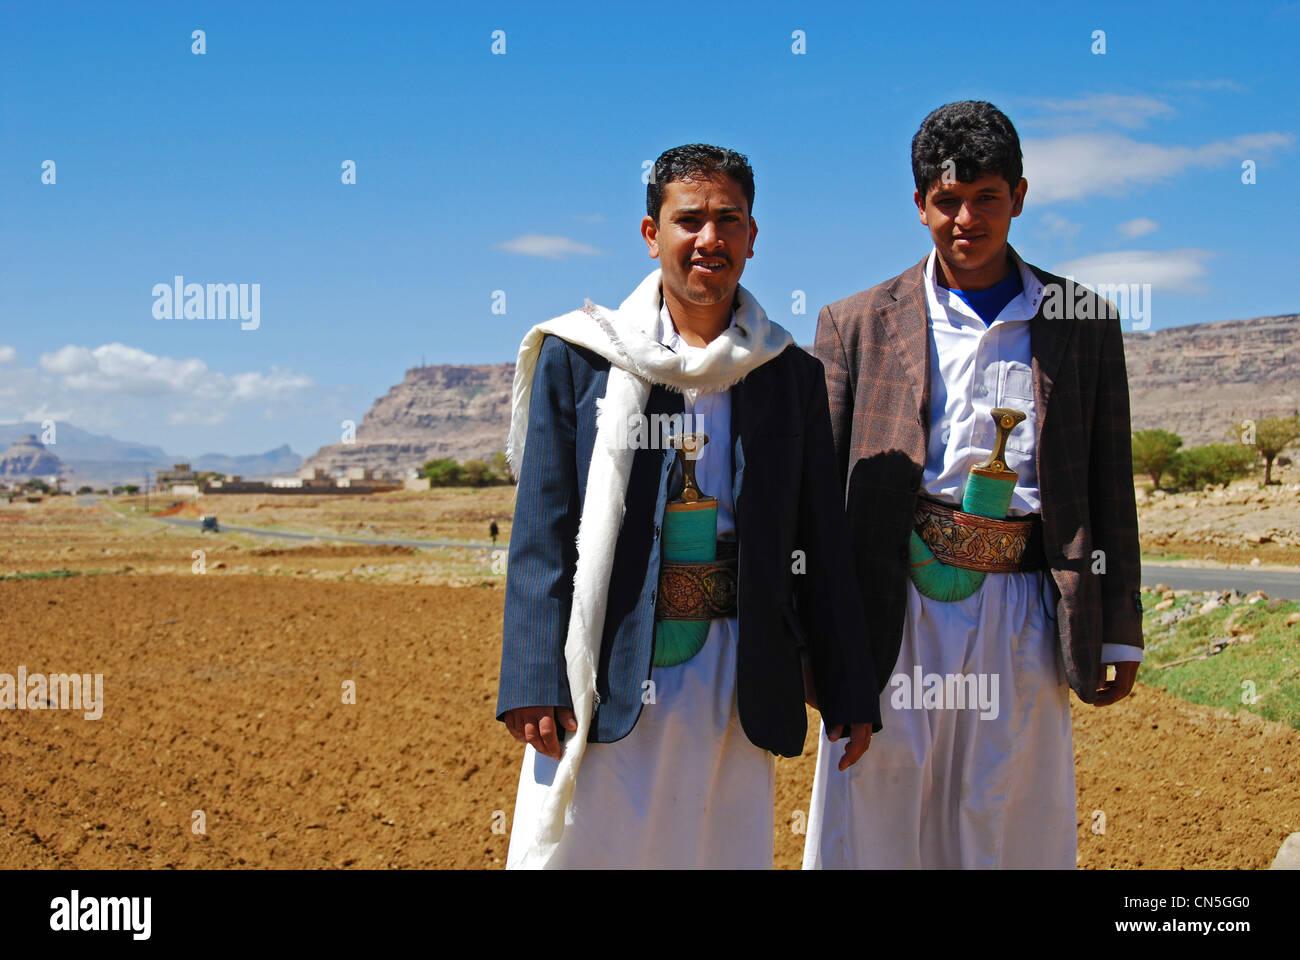 Yemen, Inland, portrait of smiling local men standing with famers ploughing field in the background - Stock Image